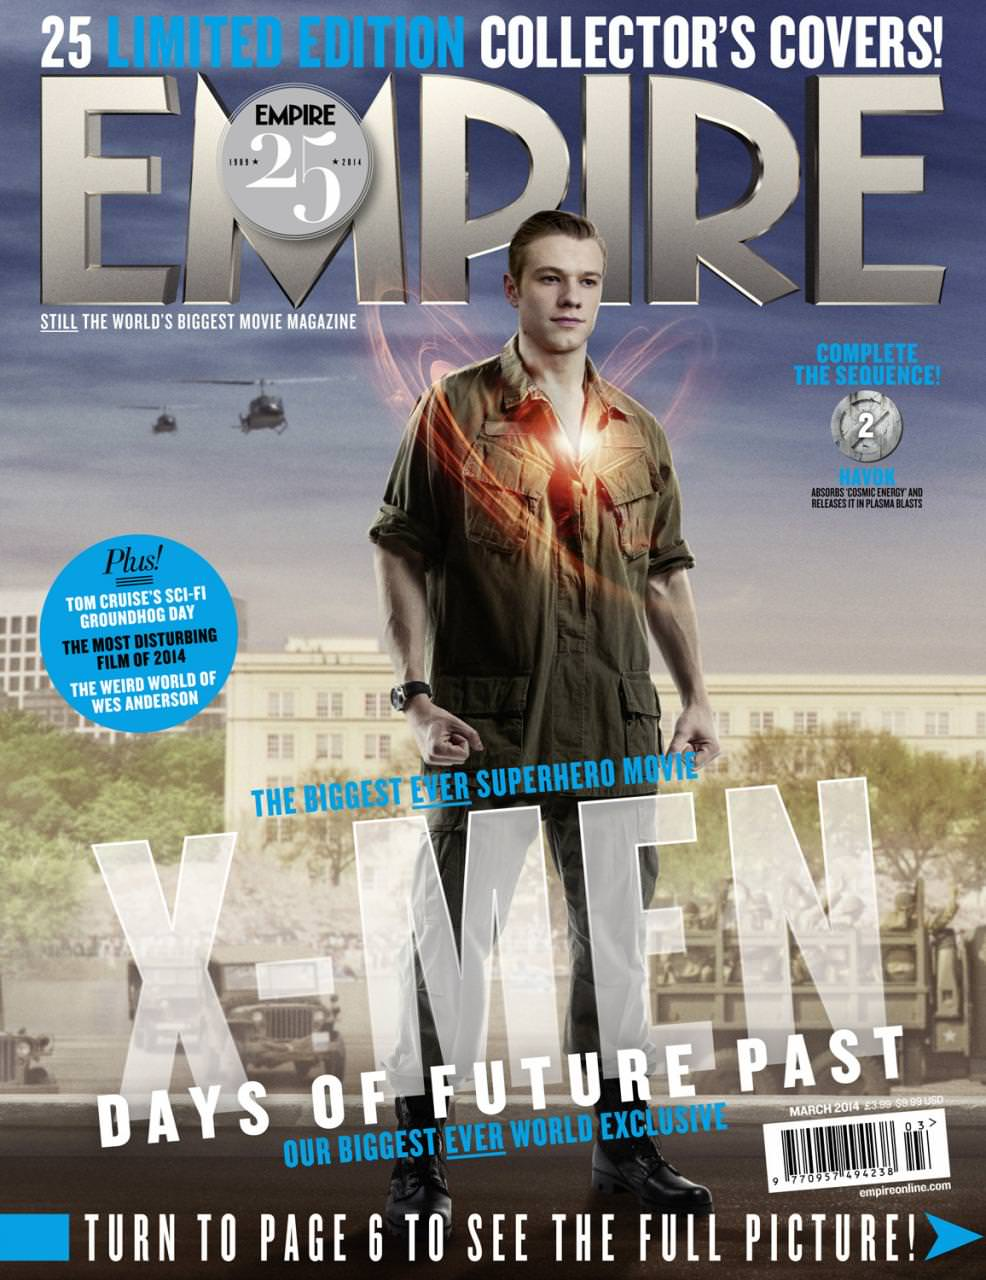 Days_of_Future_Past-Cover2